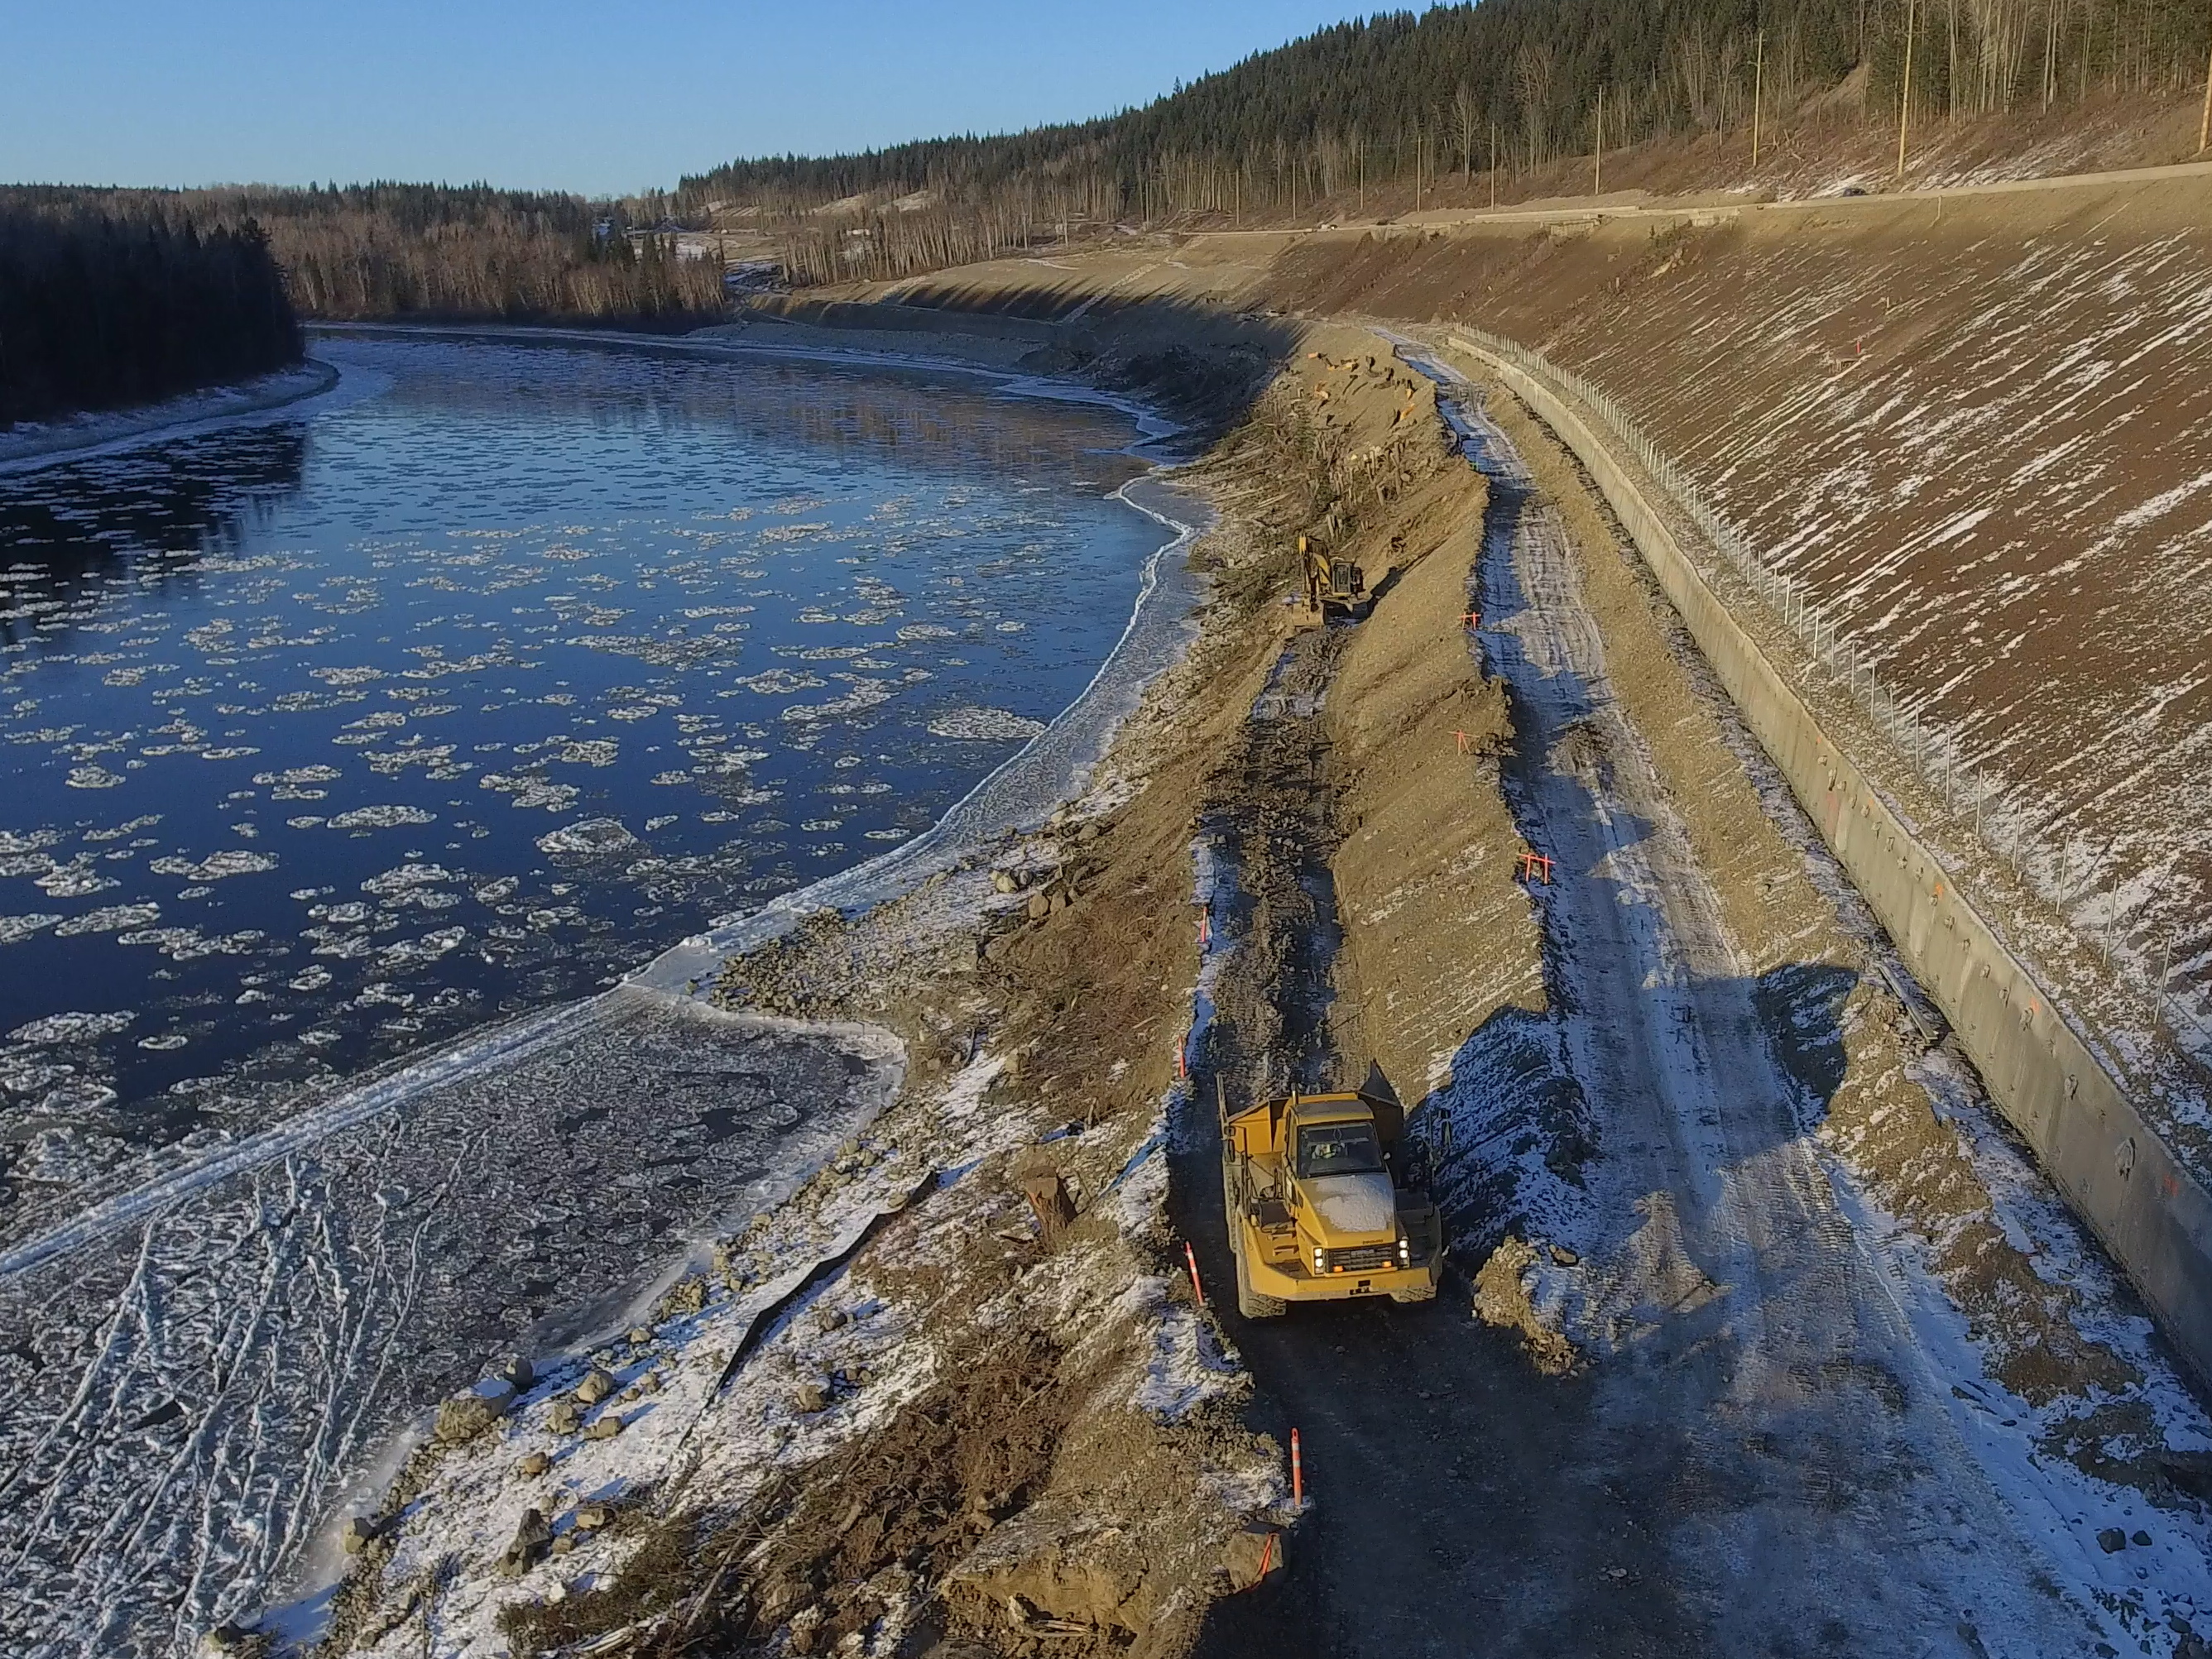 Placing rip-rap, or rock armour, to stabilize the banks along the Fraser River